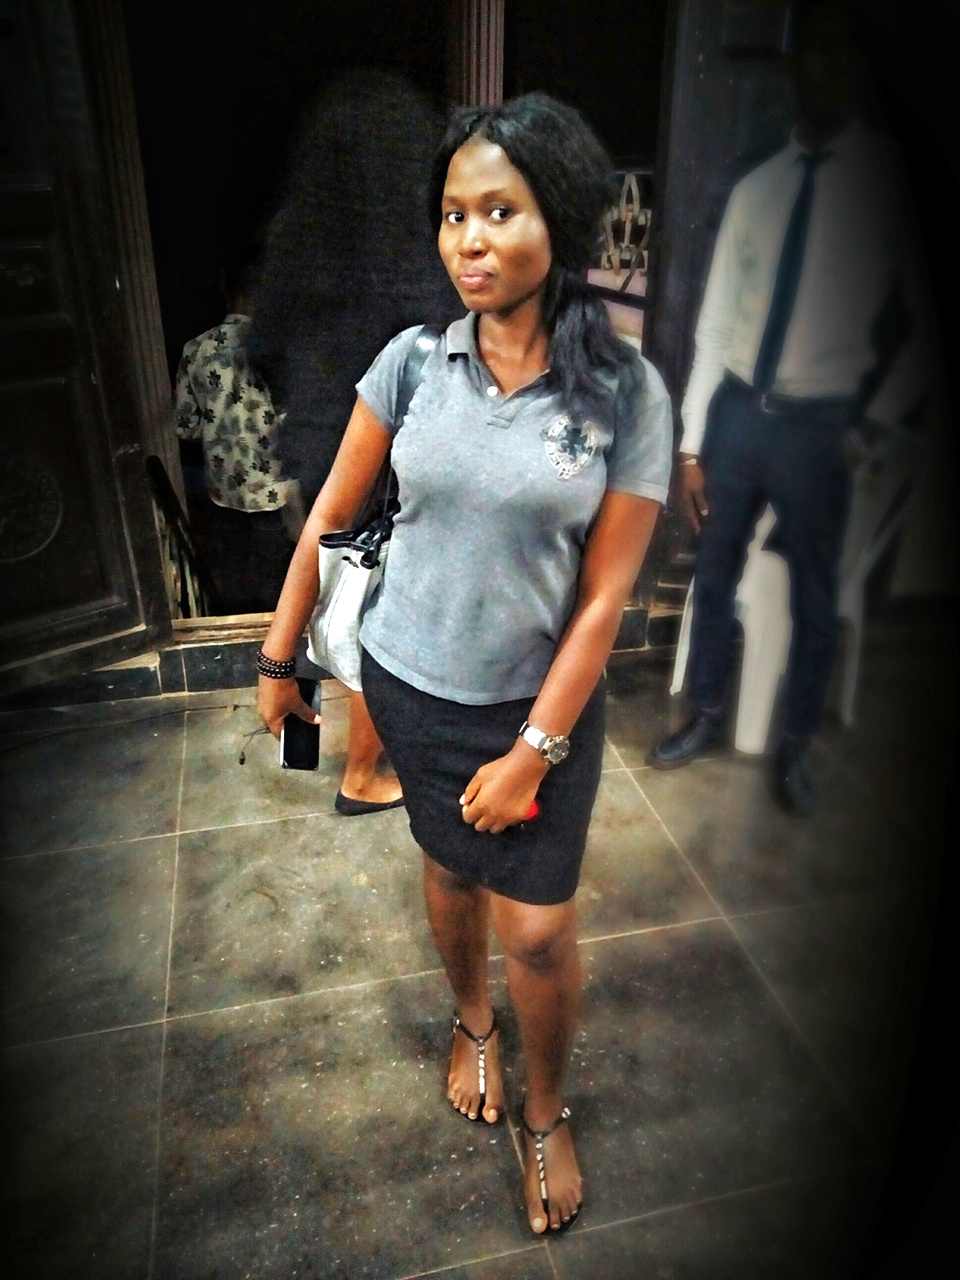 FACE OF 9JABESTLOADED OF THE WEEK